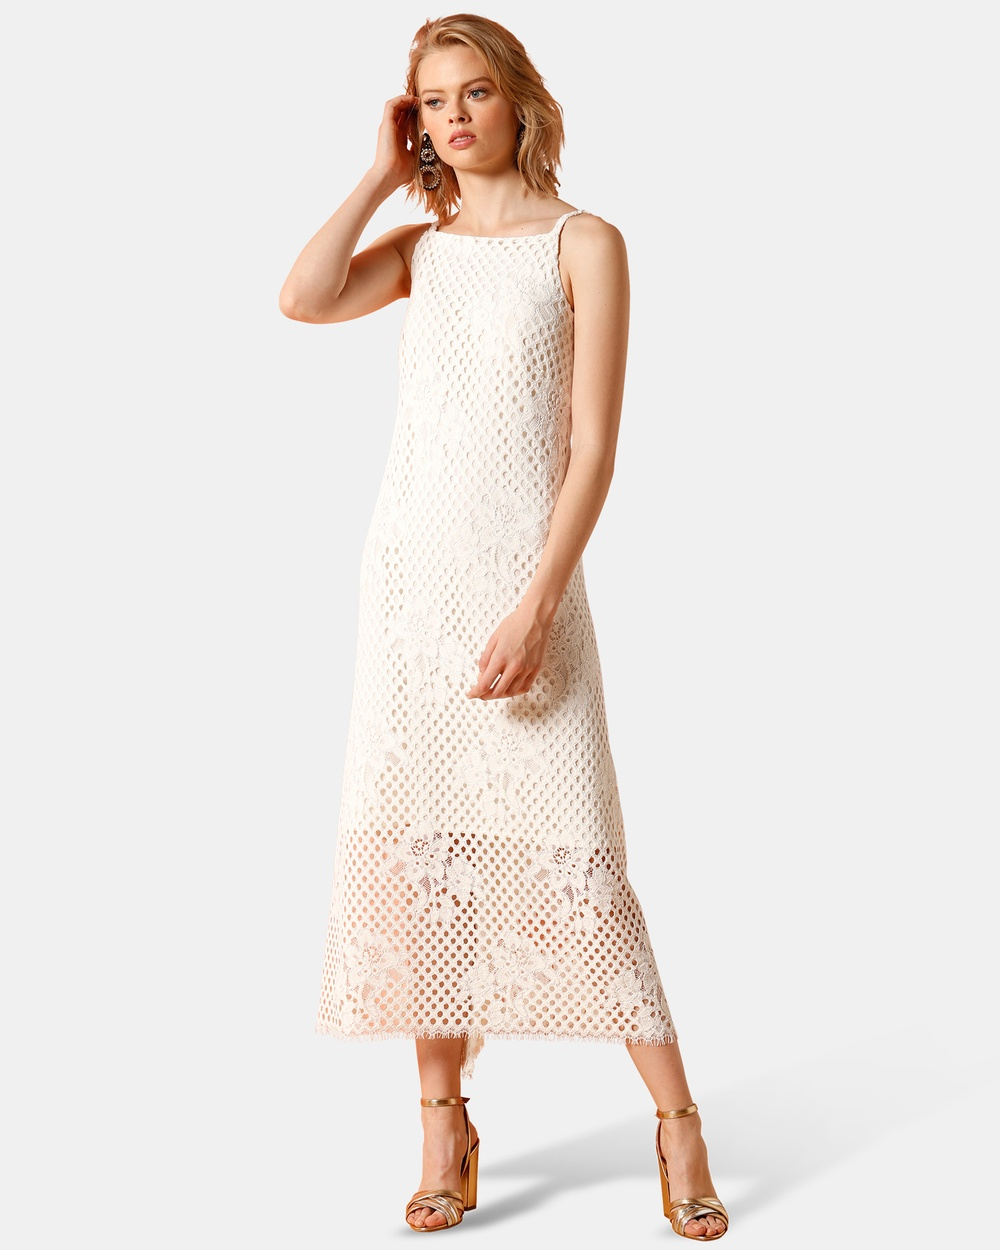 SACHA DRAKE White Vista Point Dress